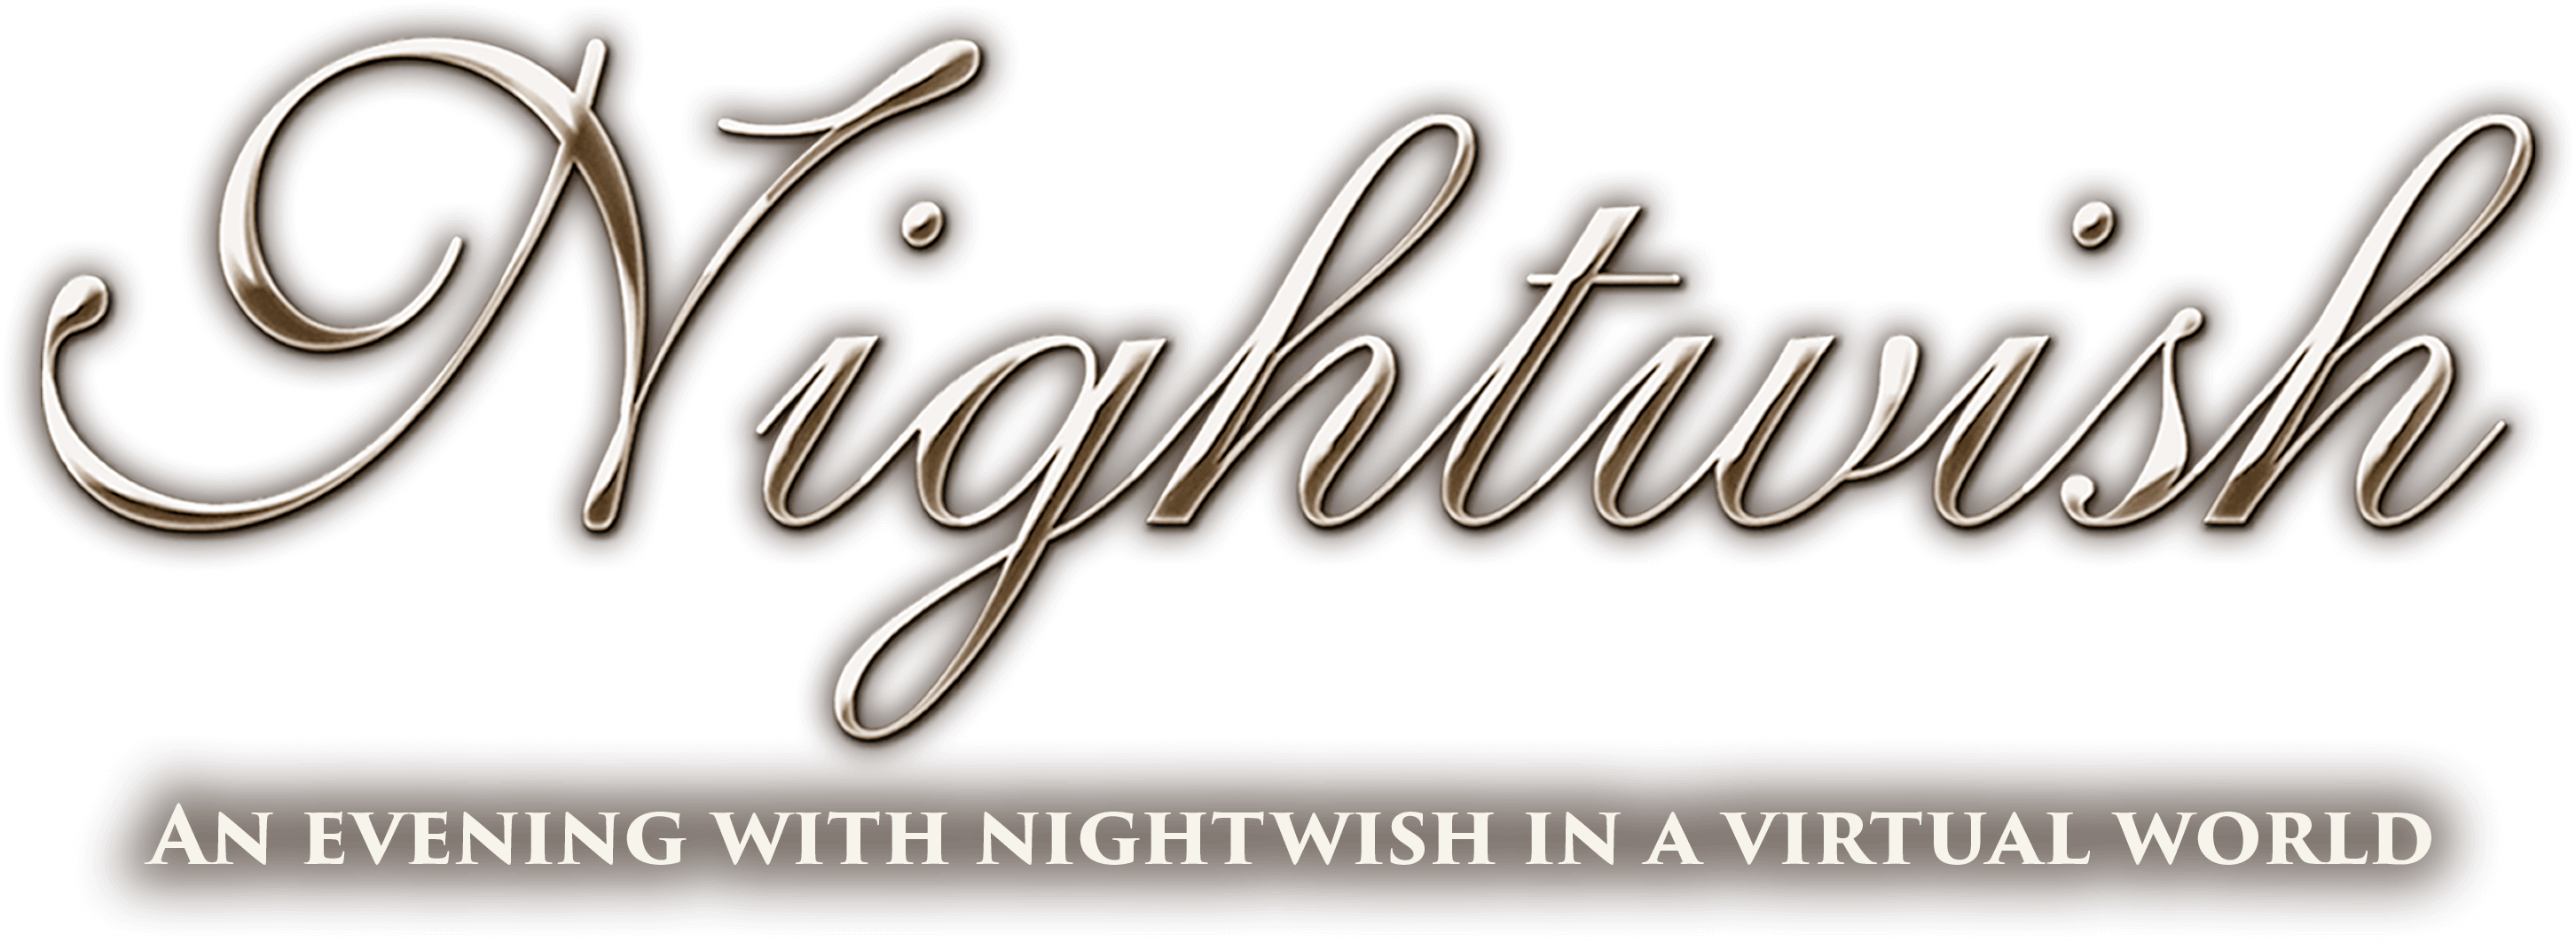 An Evening With Nightwish In A Virtual World Logo